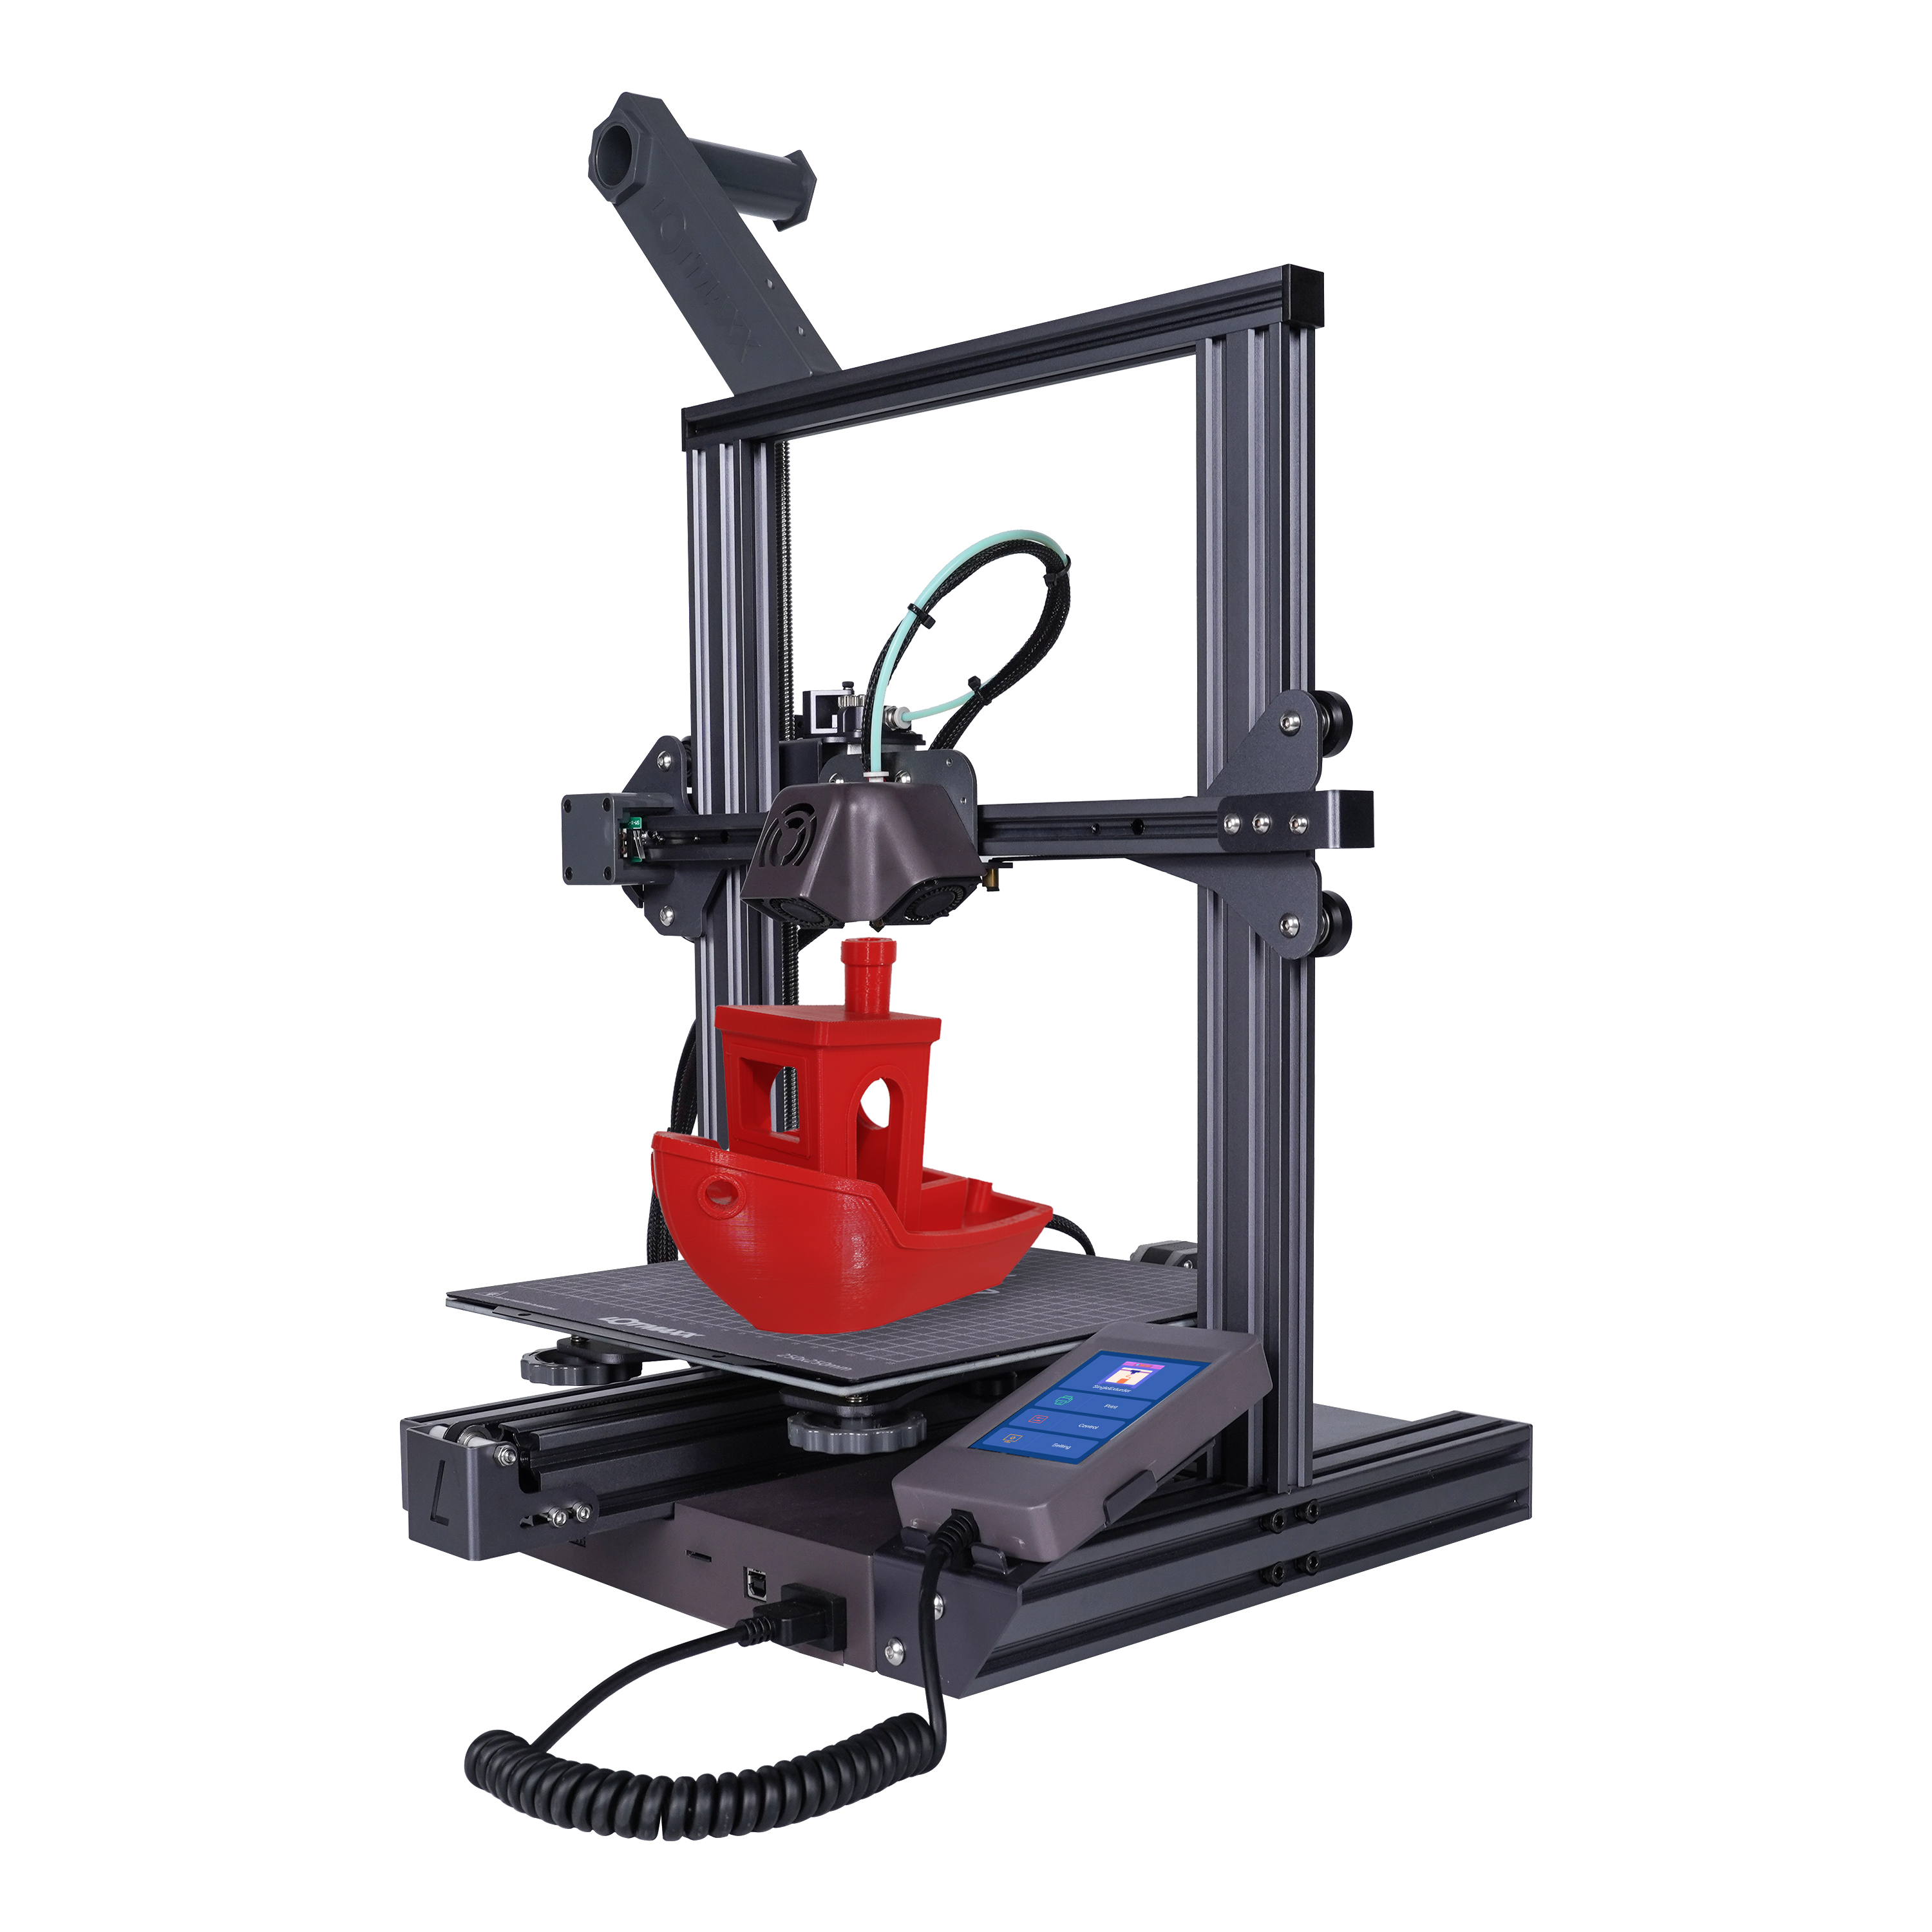 LOTMAXX SC-10 SHARK 3D Printer 235*235*265mm Print Size With 8 Languages Translate/Auto Leveling Support Dual Color Print